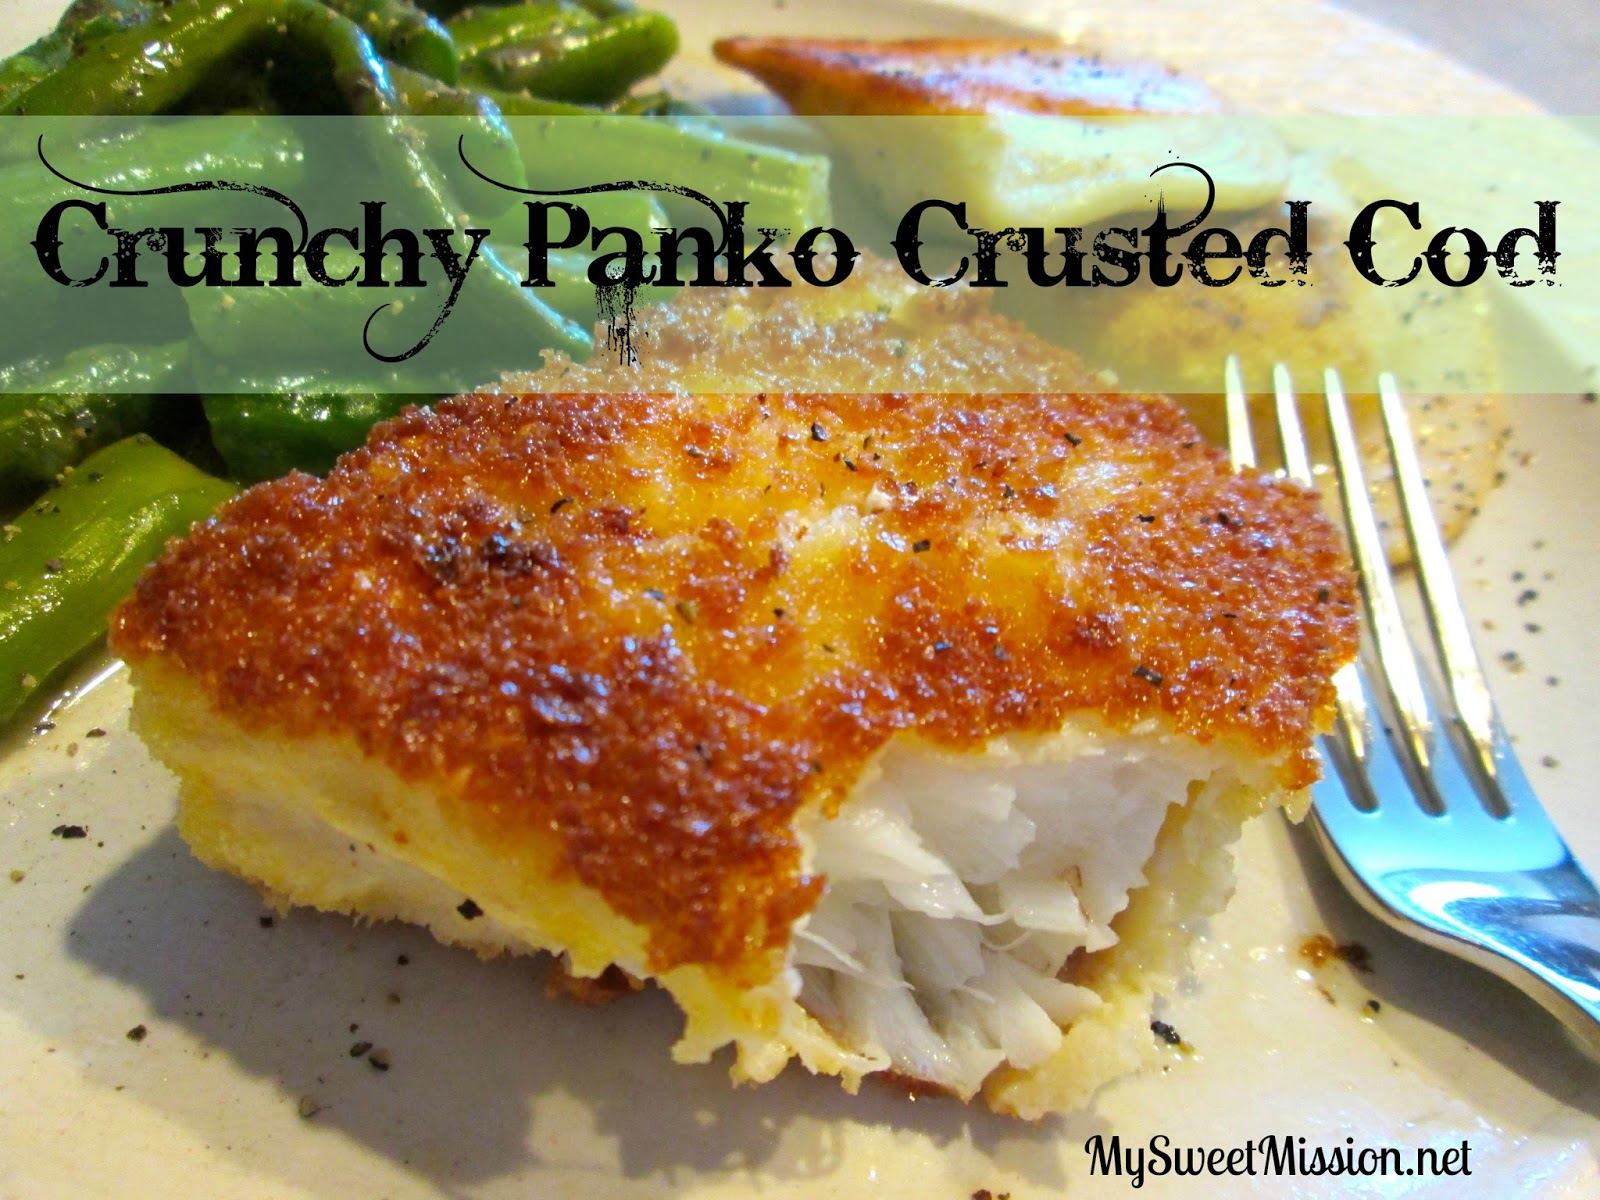 Crunchy Panko Crusted Cod My Sweet Mission